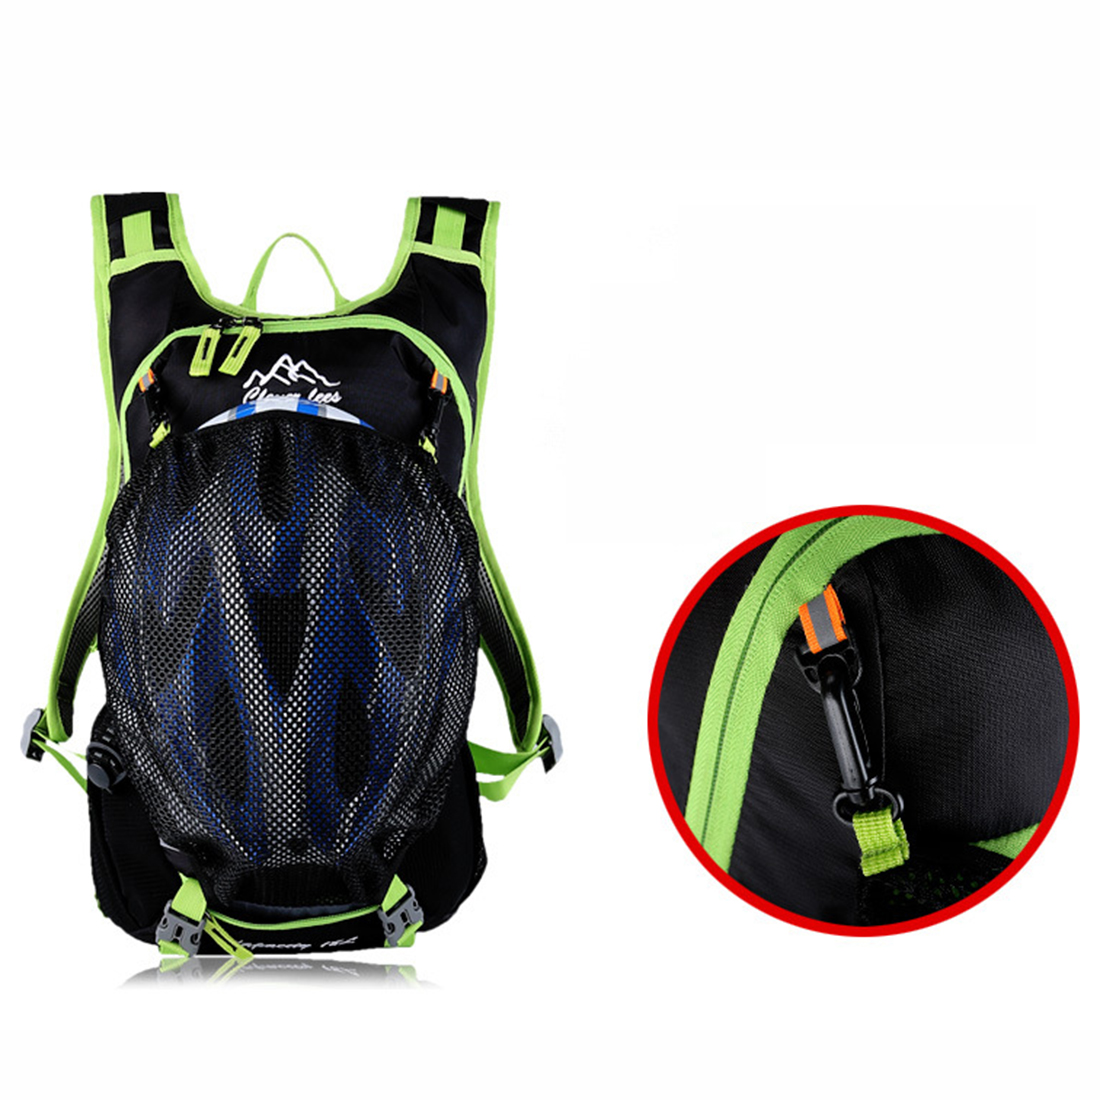 18L Men Women Riding Backpack Waterproof Bag Outdoor Sports Bag Male Shoulders Cycling Bag Bbycicle Accessories in Bicycle Bags Panniers from Sports Entertainment